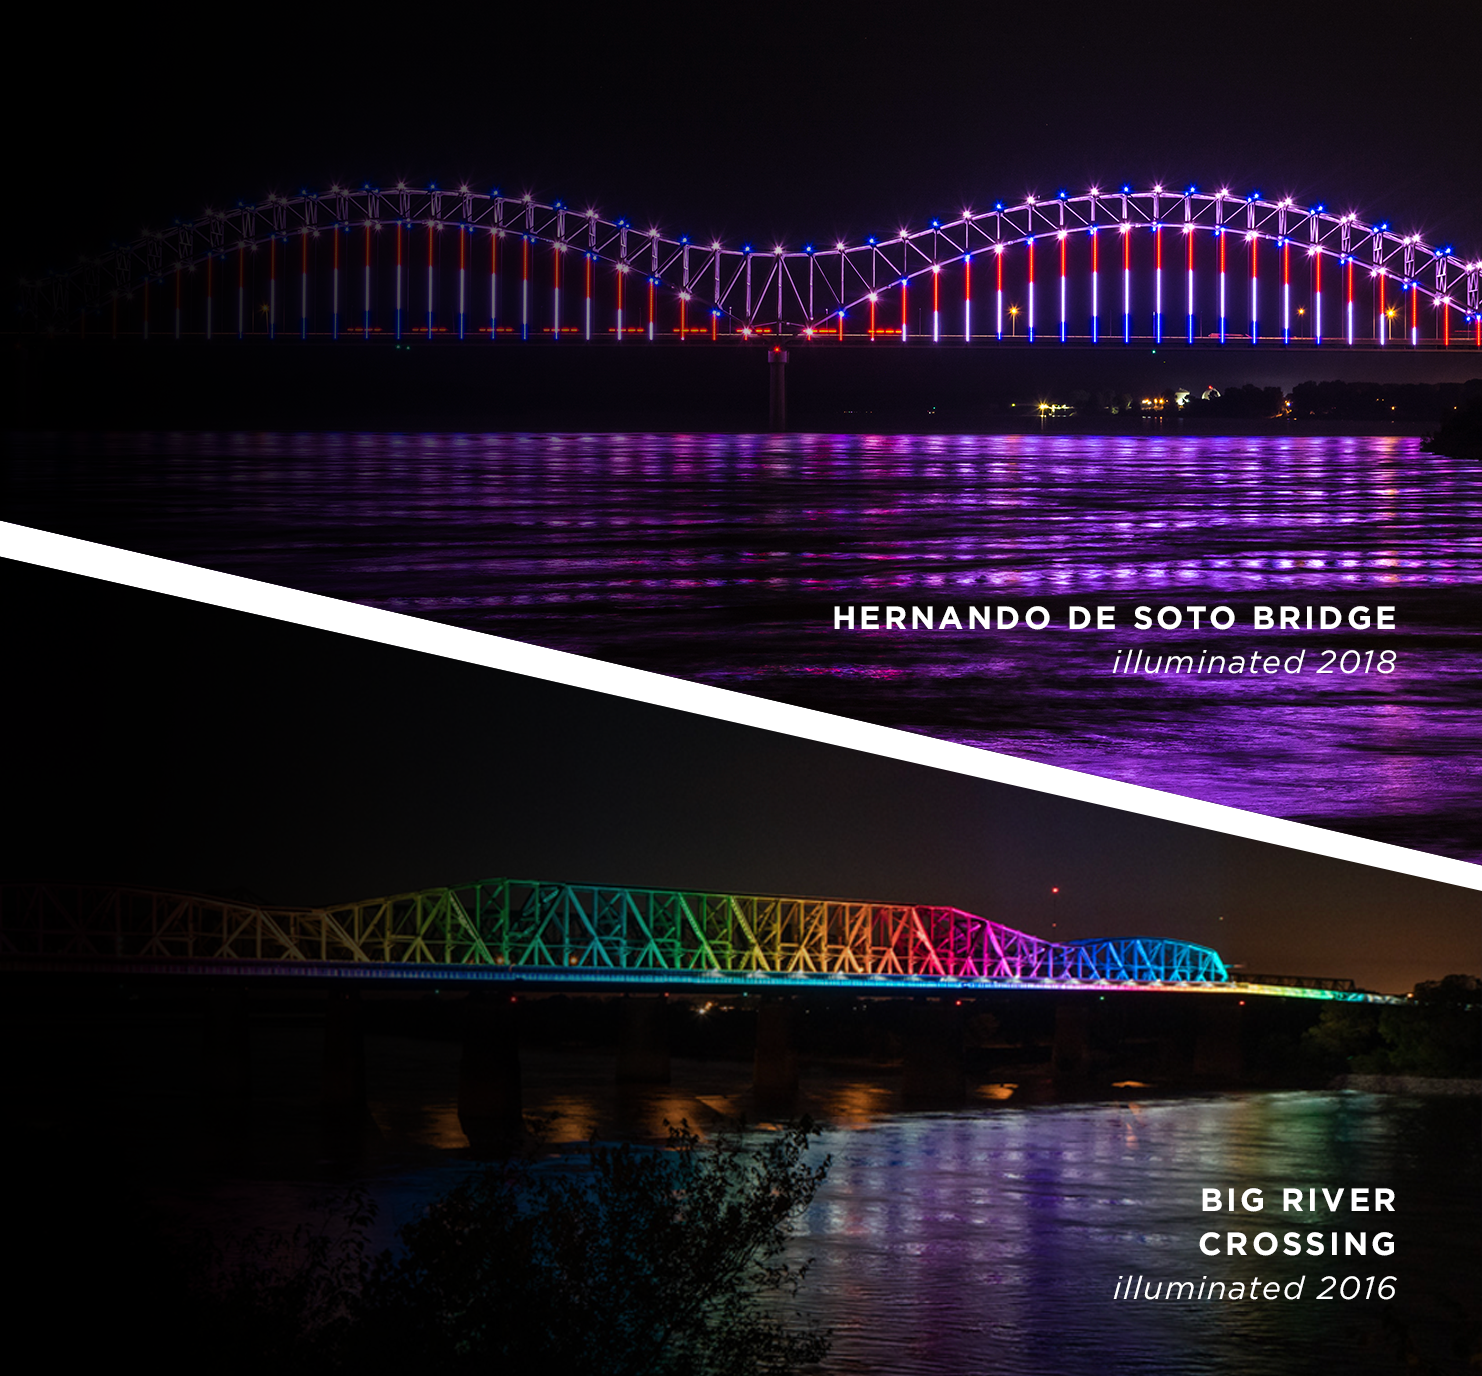 Reflecting the energy of memphis - Join us for the biggest nightly light show on the Mississippi River. Running every hour on the hour from sundown to 10pm finale.